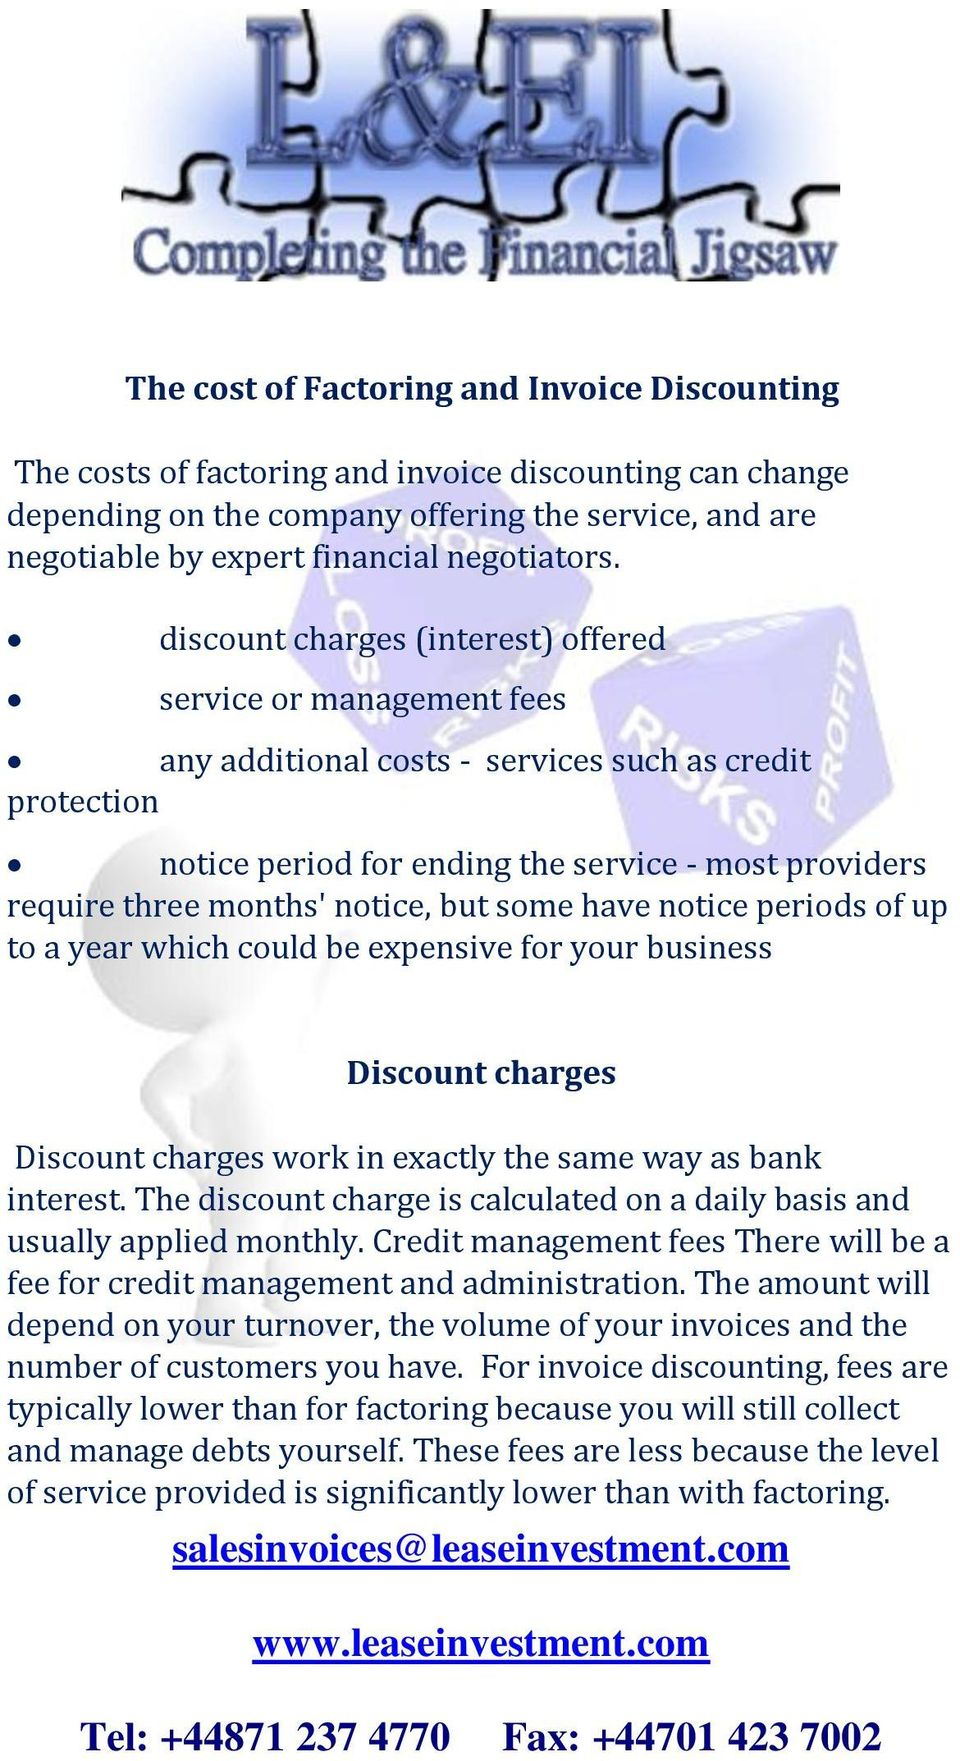 discount charges (interest) offered service or management fees any additional costs - services such as credit protection notice period for ending the service - most providers require three months'